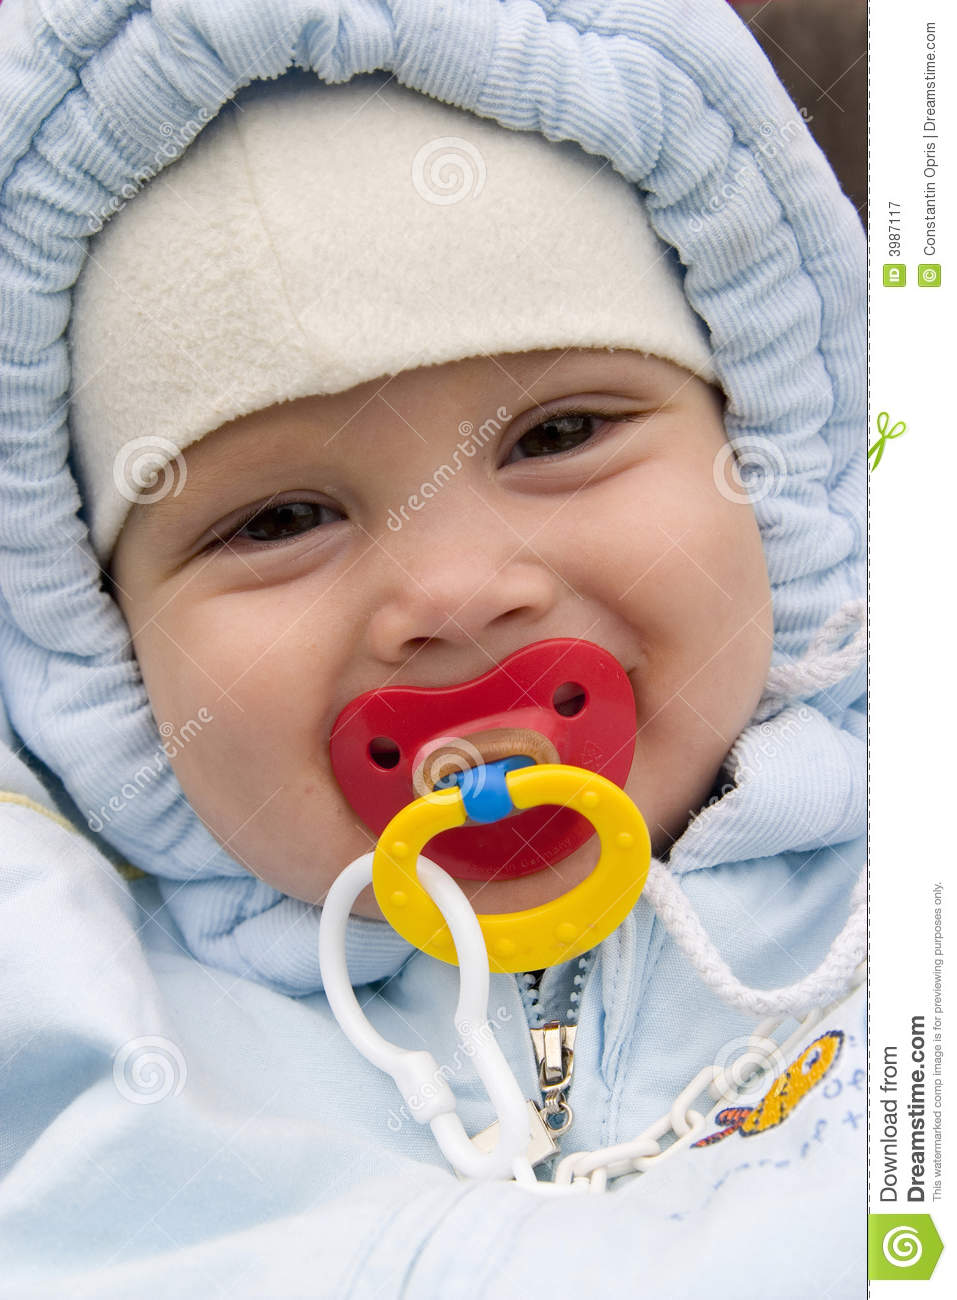 Smiling Baby With Pacifier Stock Image Image Of Pleasure